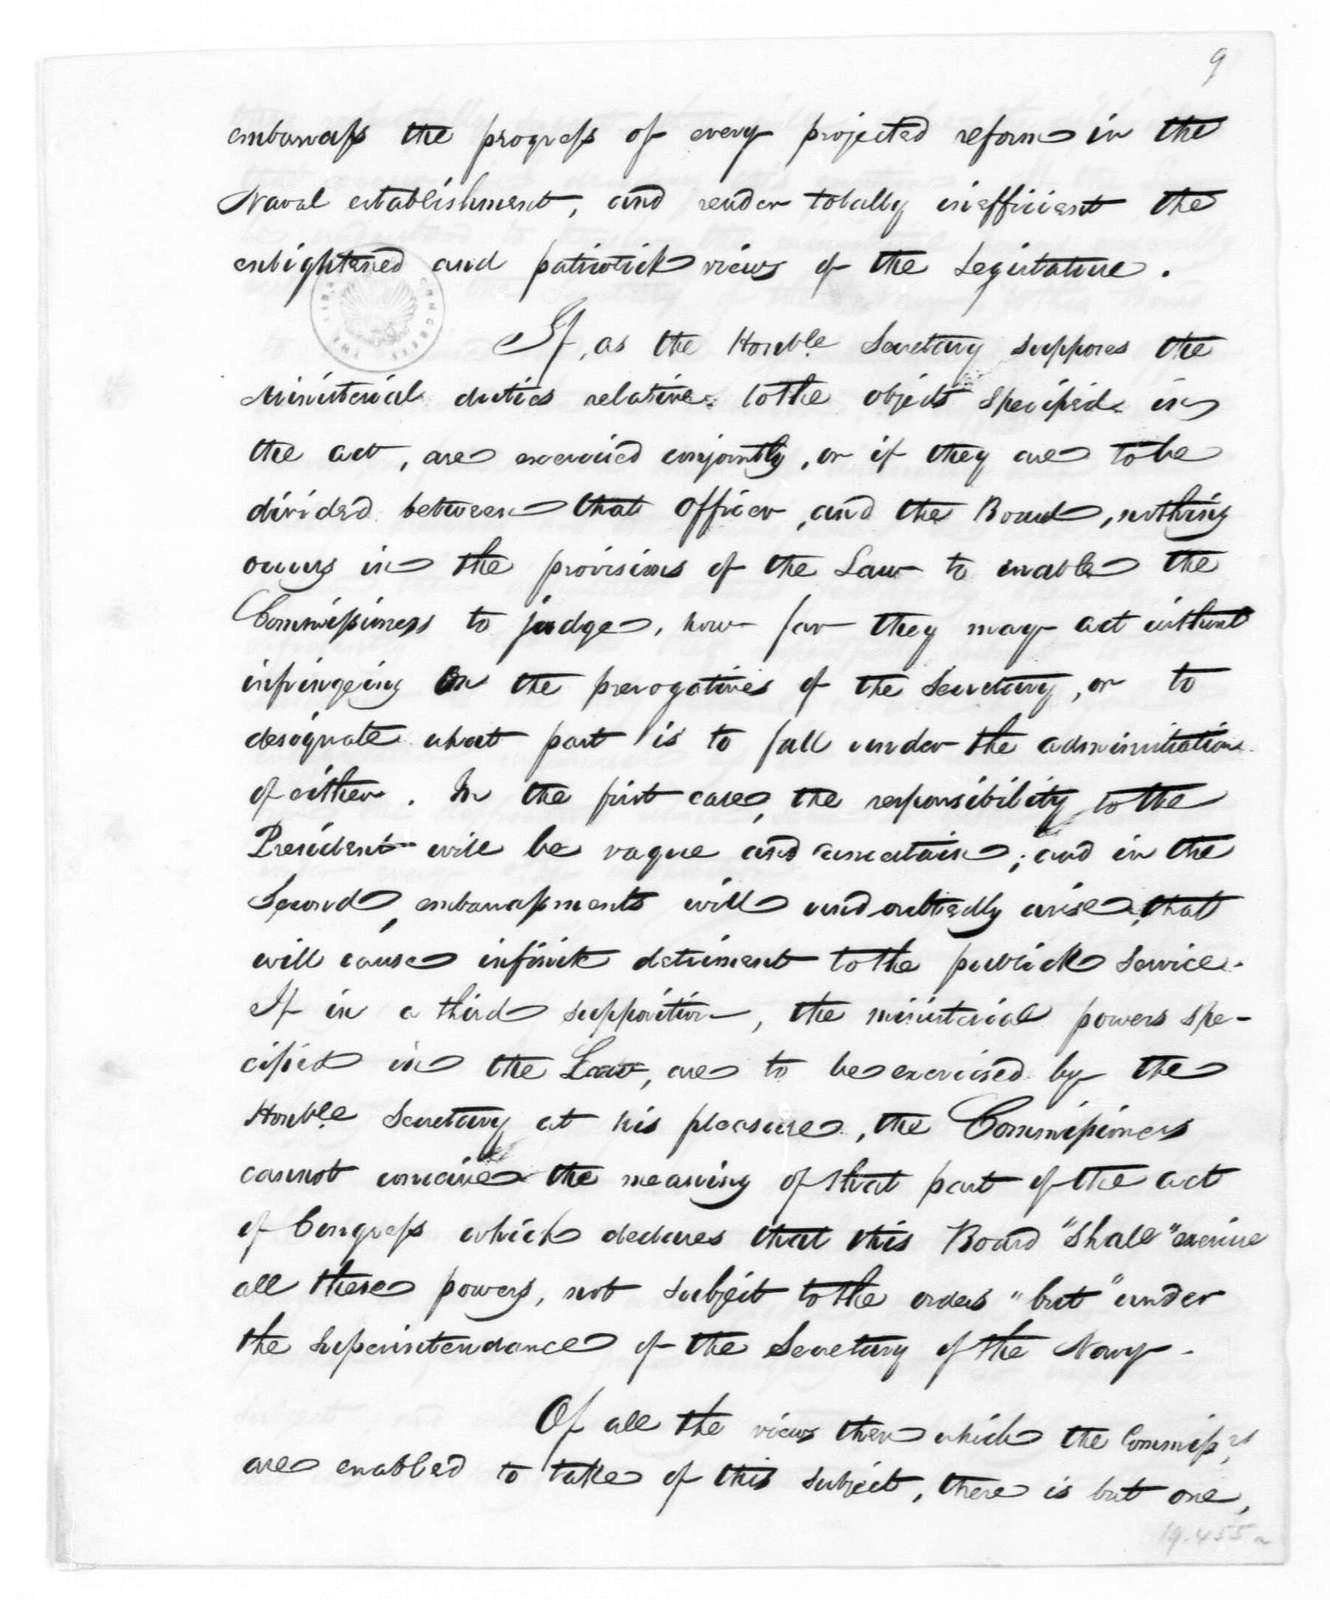 John Rodgers to James Madison, May 25, 1815. From the Navy Department Commissioners